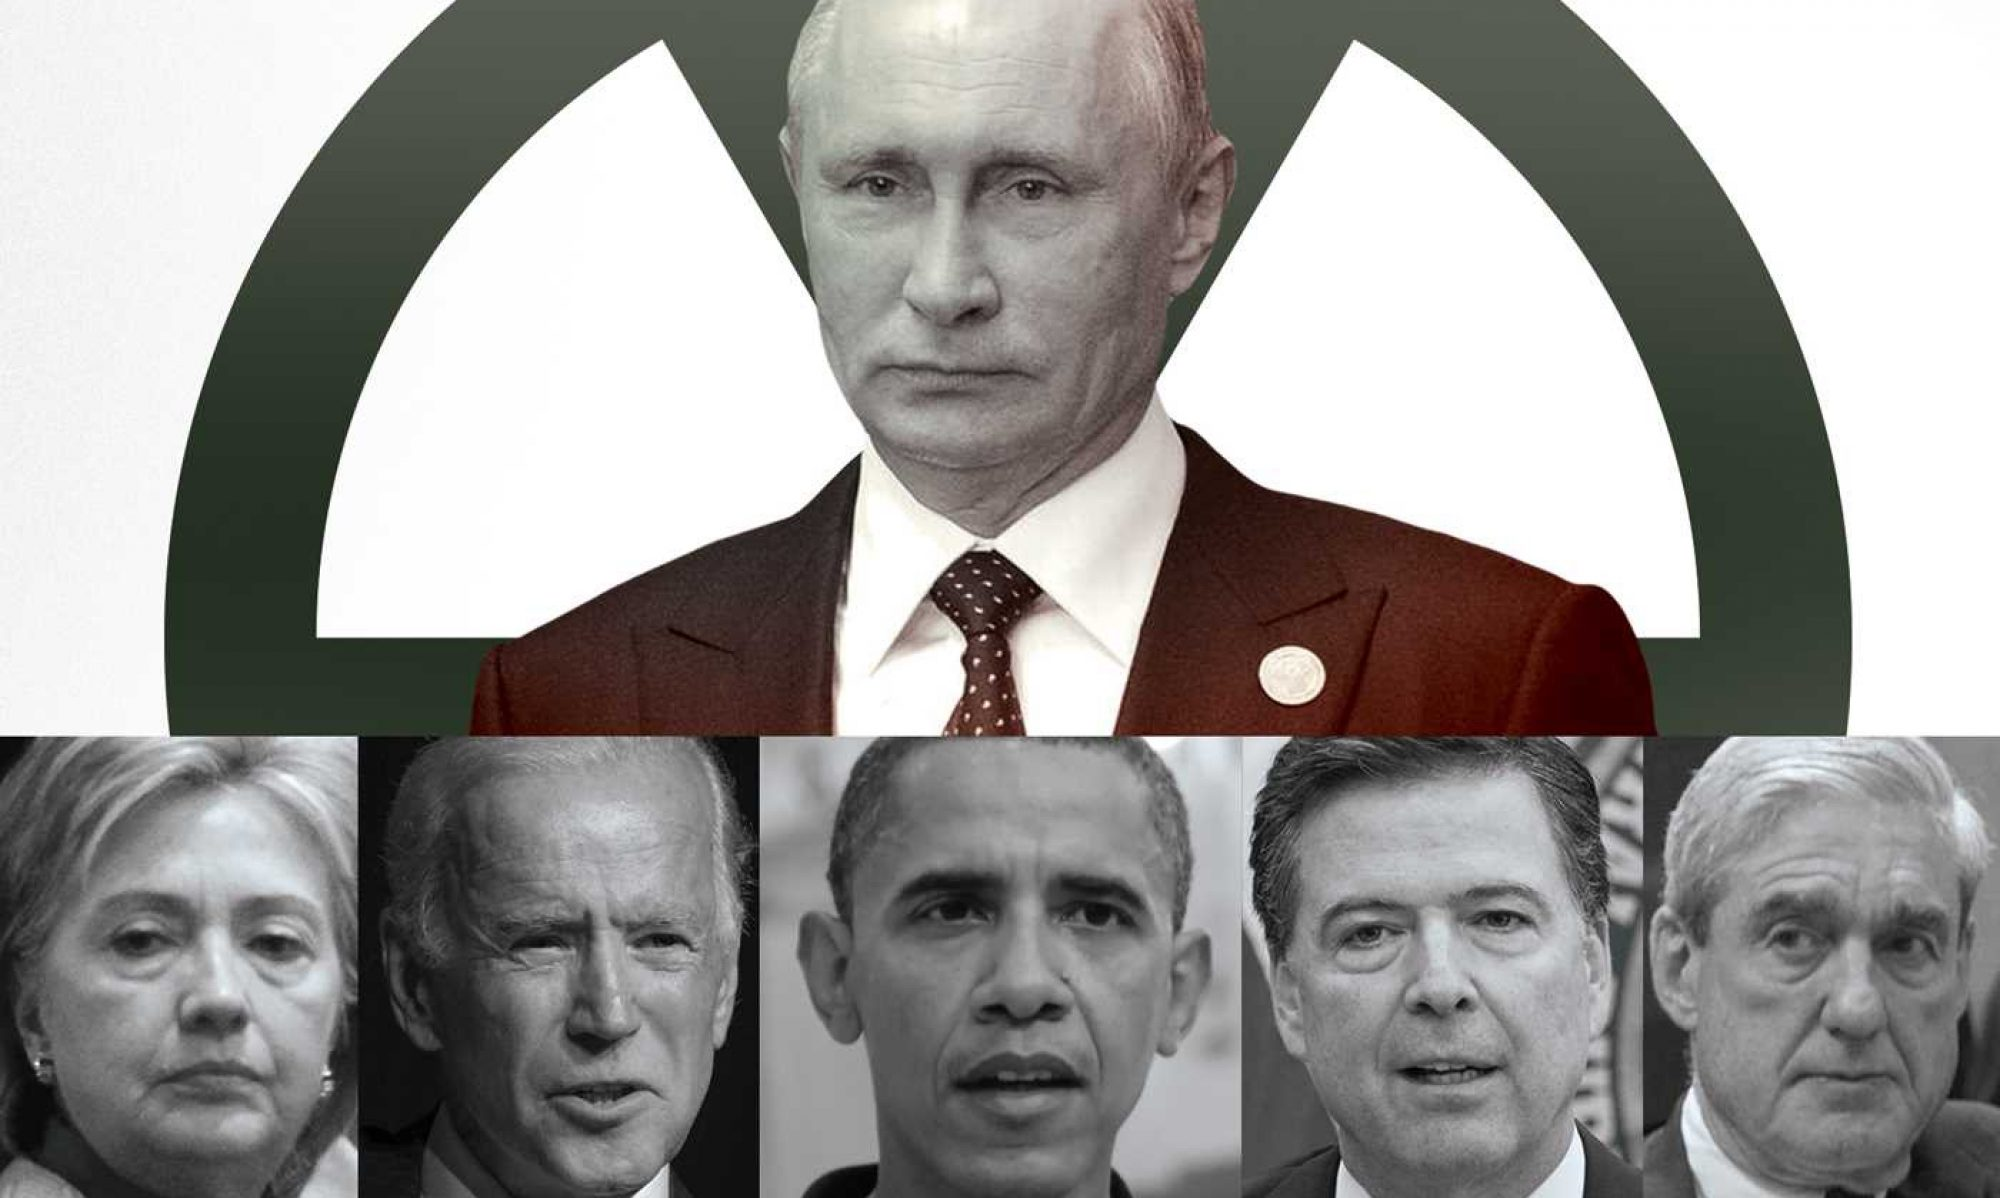 FALLOUT: Nuclear Bribes & Russian Spies